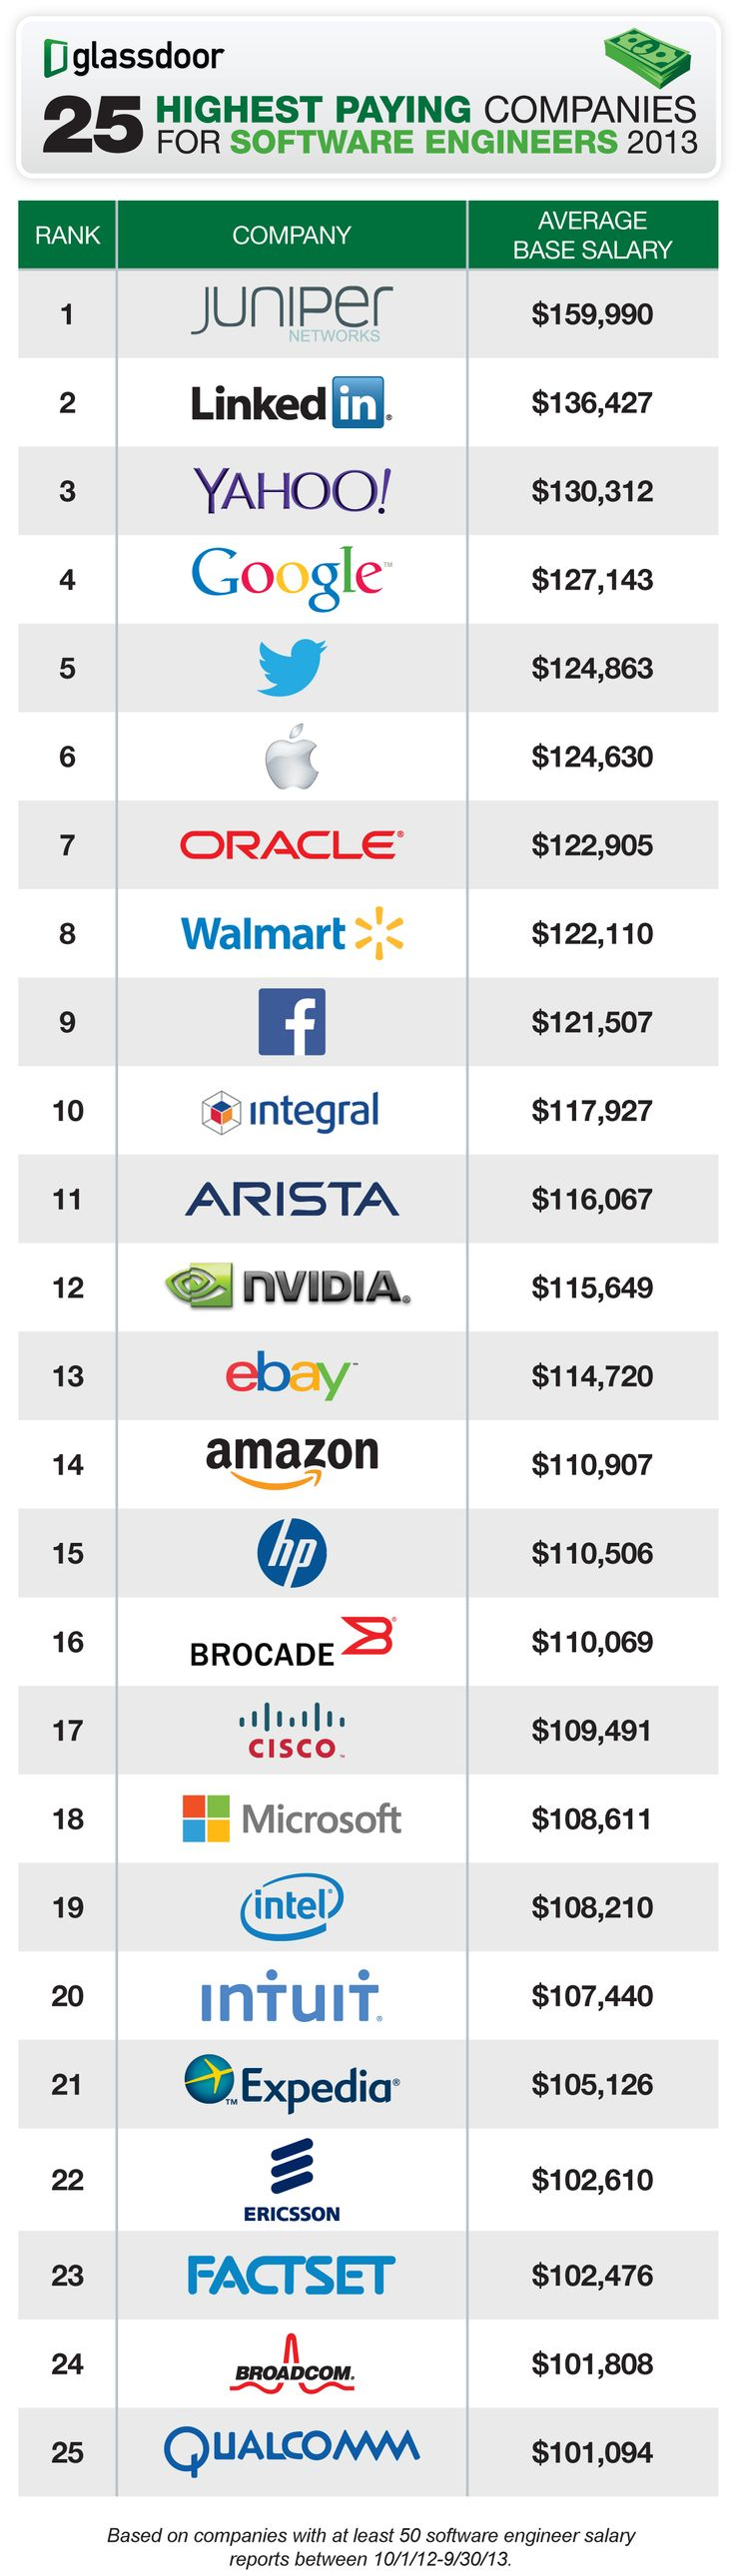 25 highest paying companies for software engineers 2013 #infographic